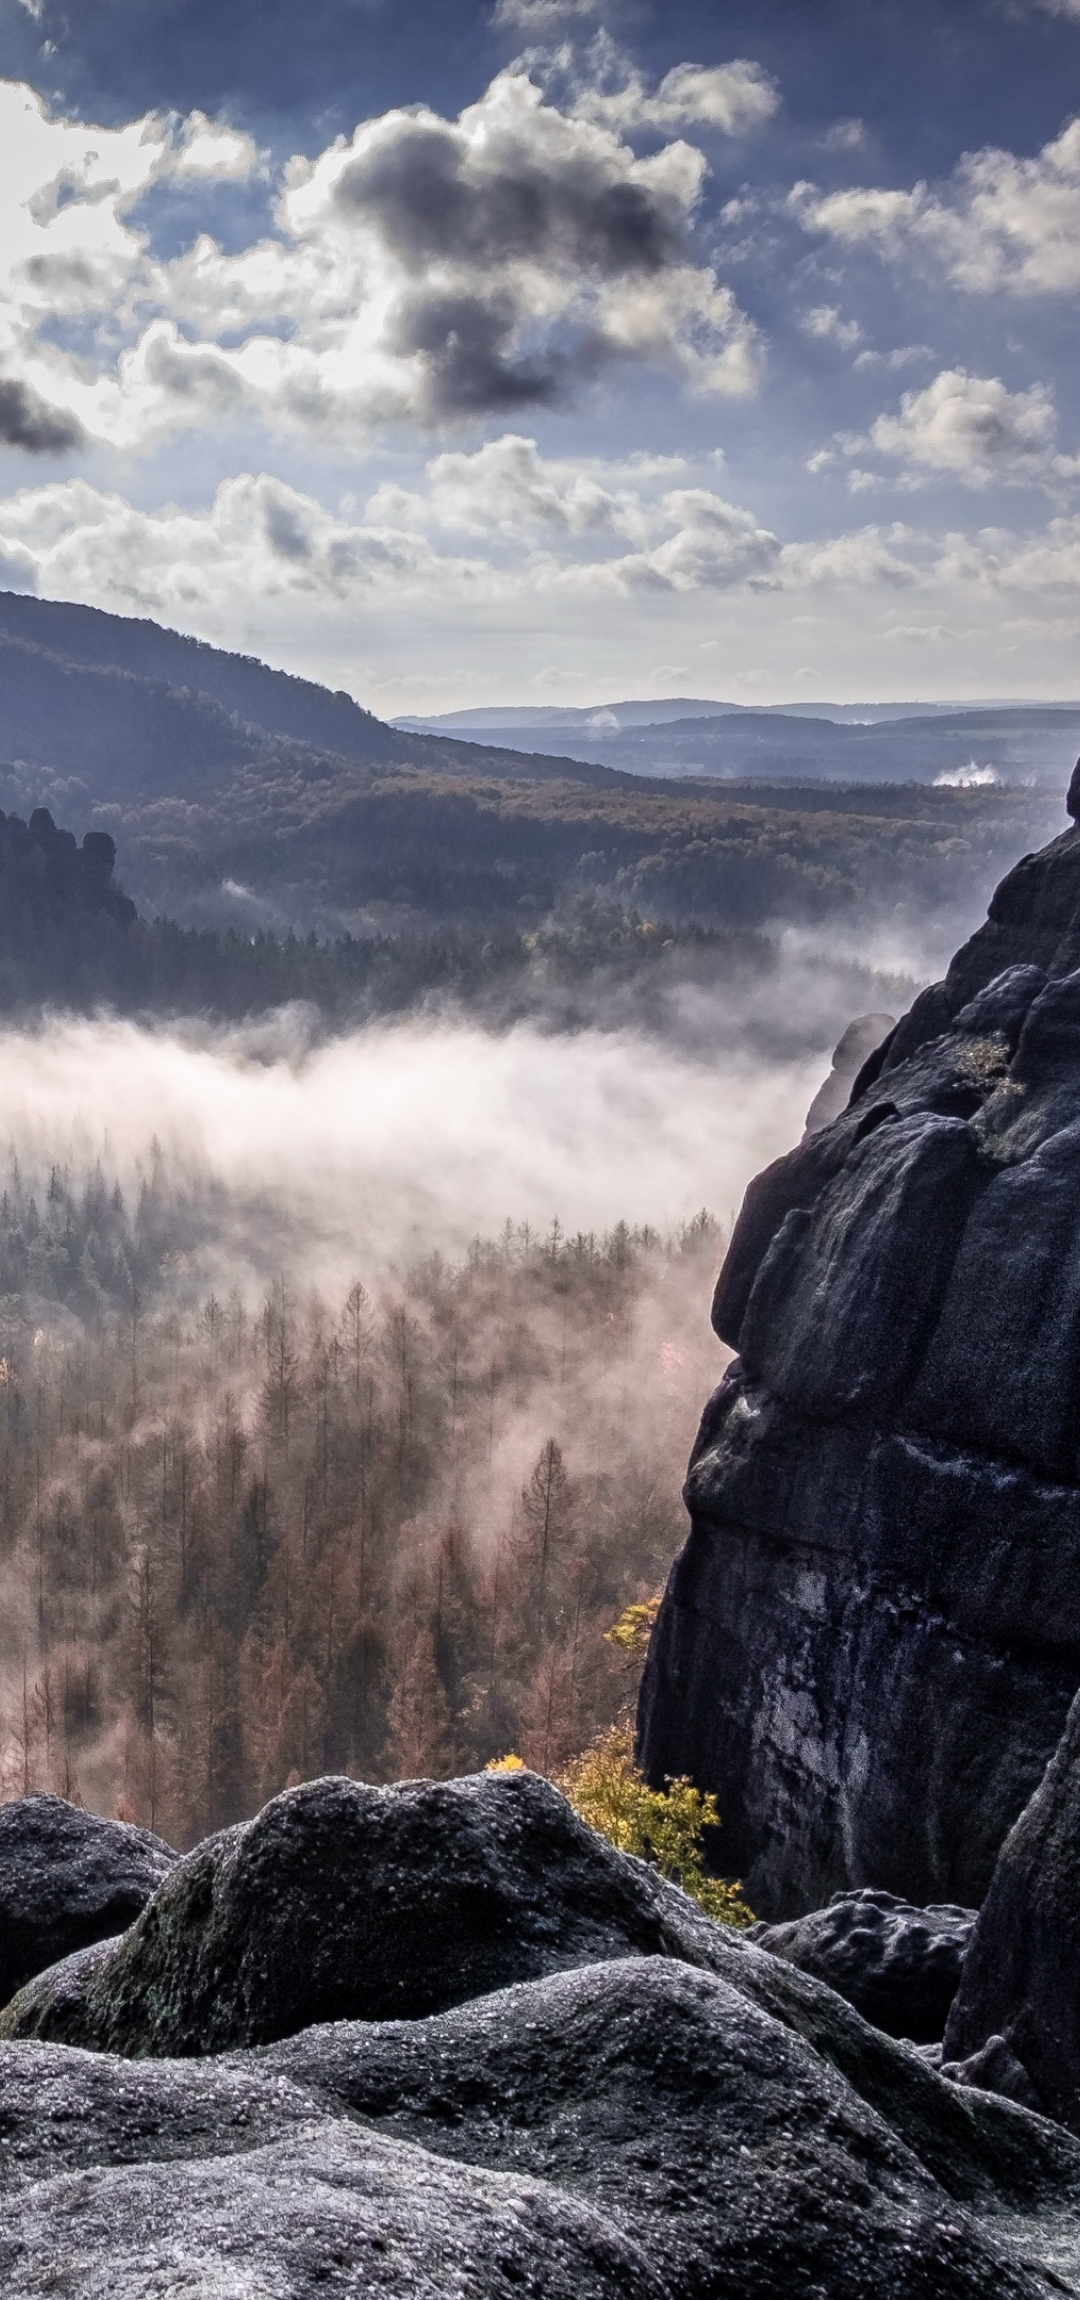 1080x2300 Fog Forest Mountain Photography 1080x2300 ...